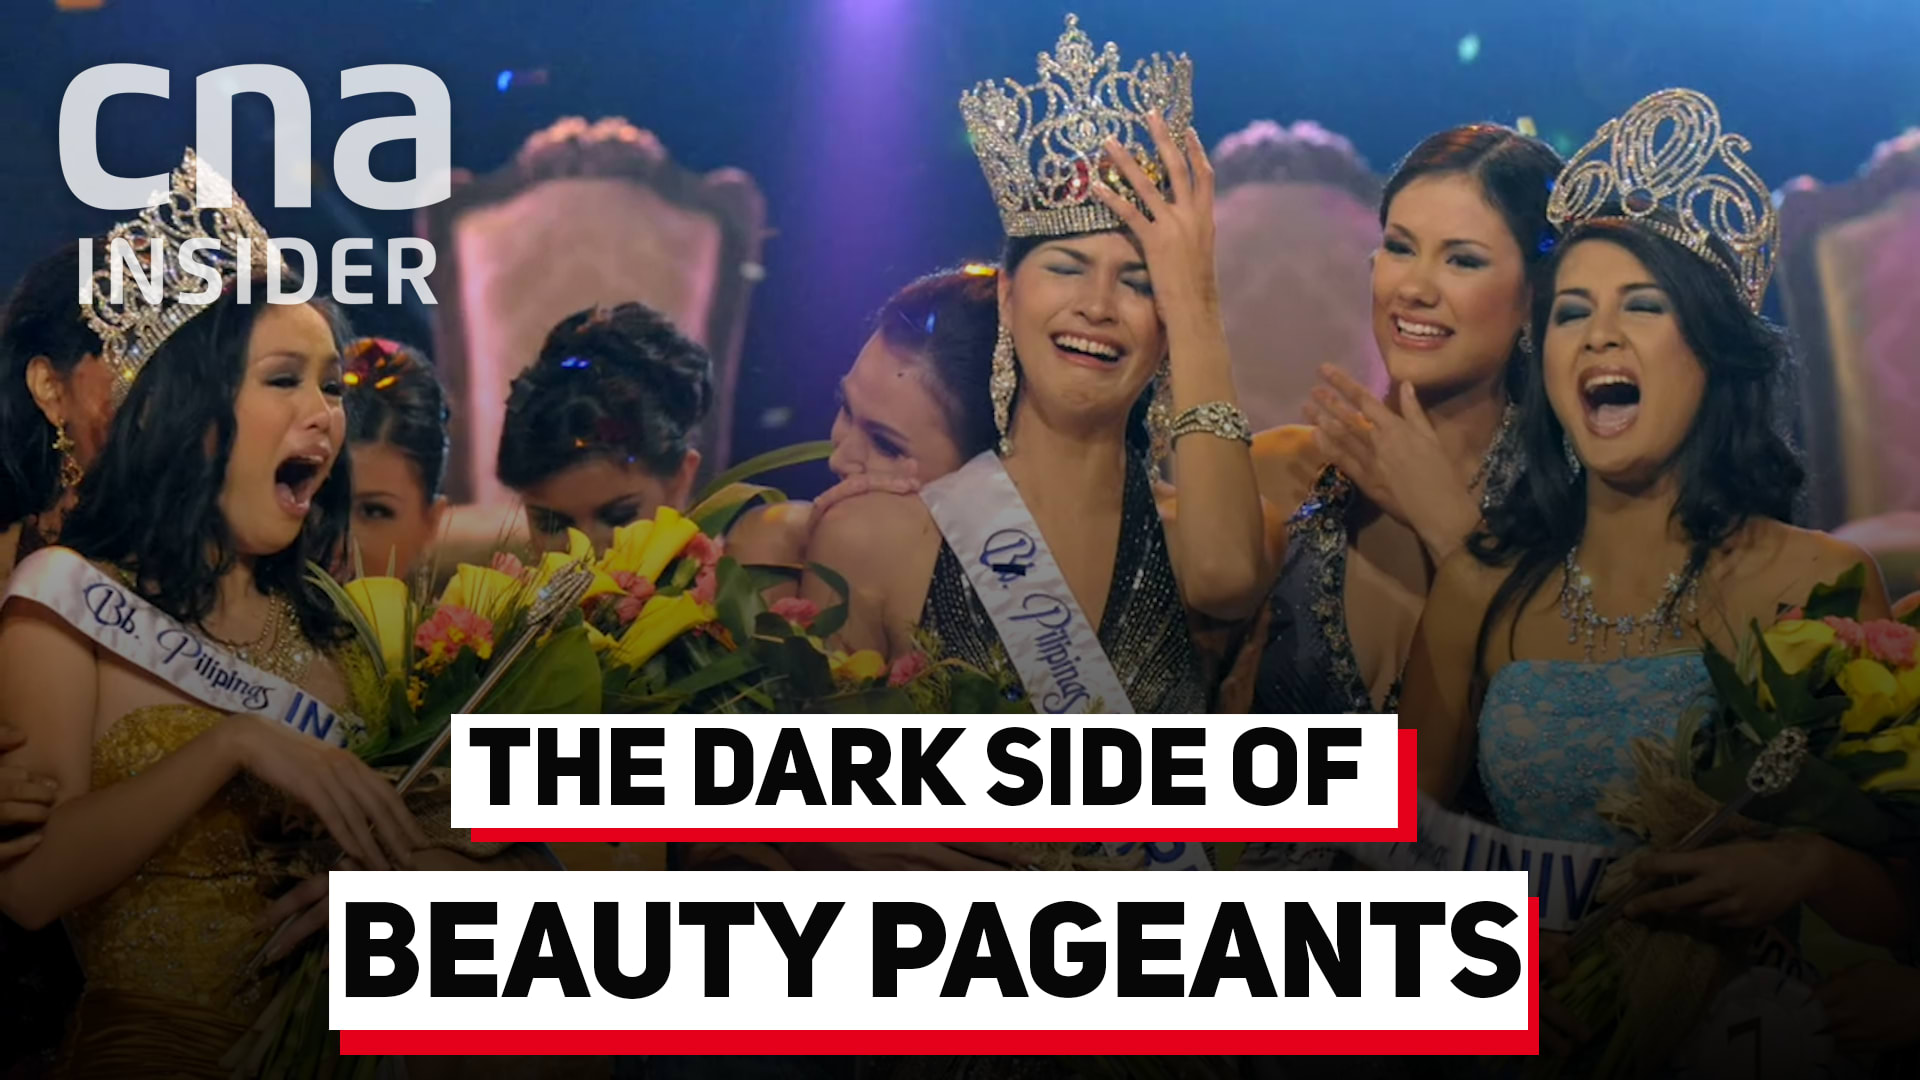 Sex and beauty pageants in the Philippines